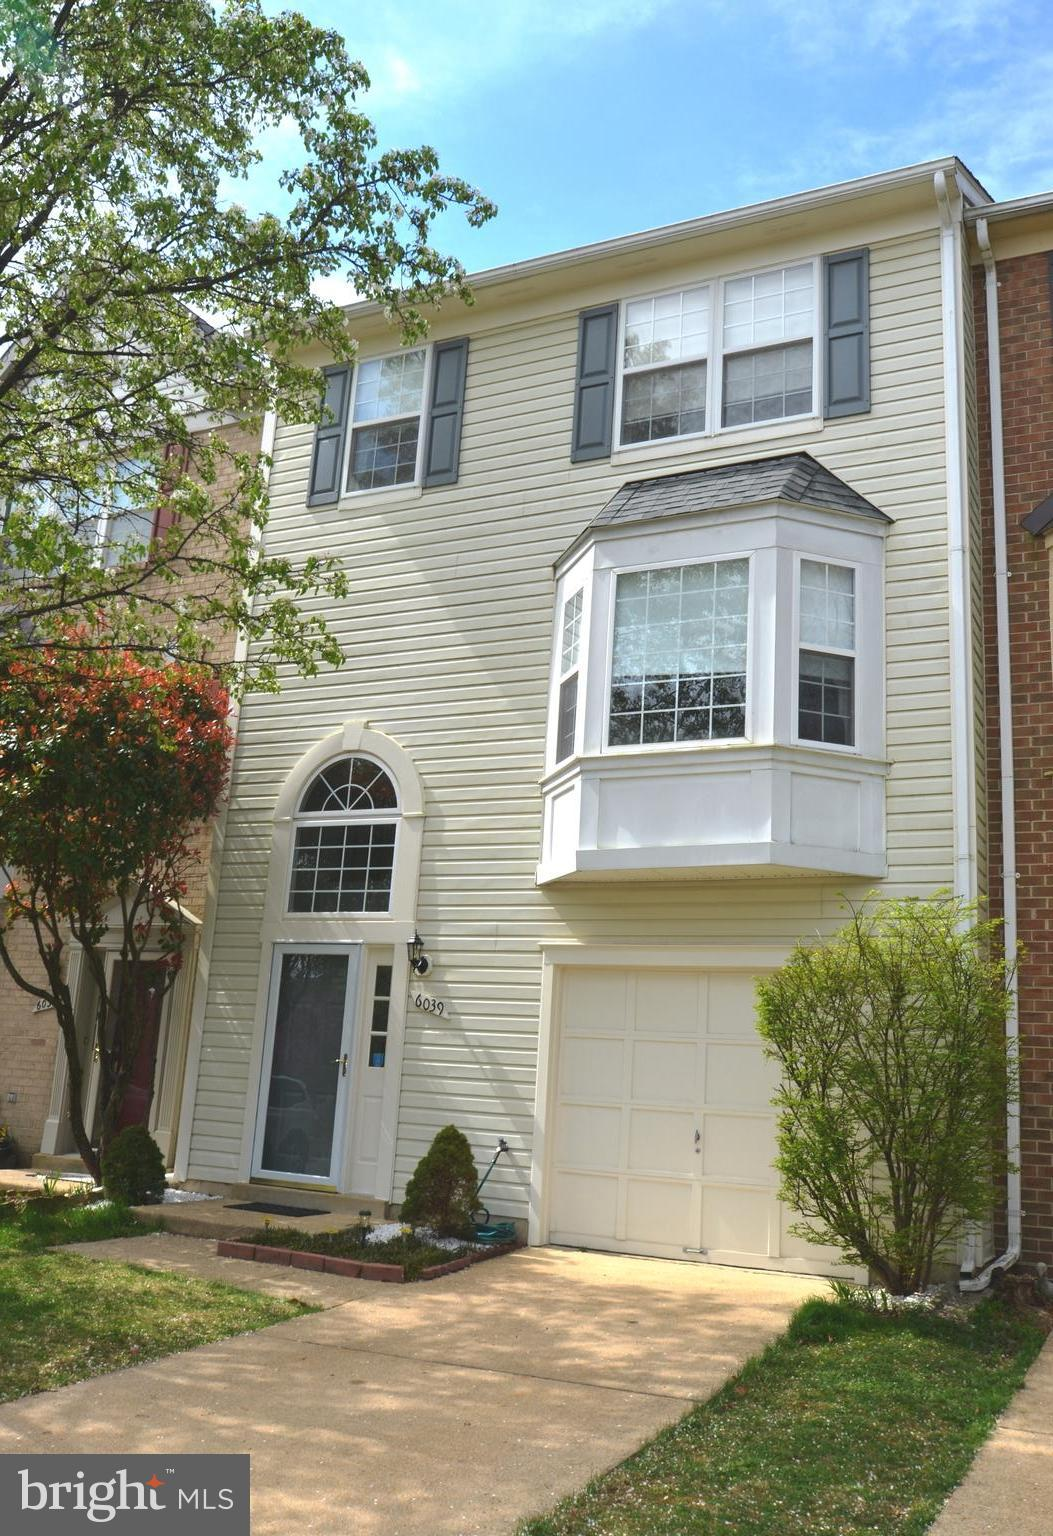 IMMACULATE GARAGE TOWNHOME IN MUCH SOUGHT-AFTER KINGSTOWNE..UPDATED KITCHEN W/ STAINLESS APPLIANCES, GRANITE COUNTERS, BREAKFAST NOOK & WALKOUT TO DECK BACKING TO WOODS..NEW HARDWOOD FLOORING THROUGHOUT TH ENTIRE MAIN LEVEL..NEW CARPET ON UPPER & LOWER LEVEL..2 HUGE MASTER SUITES W/ UPDATED BATHS...COZY FAMILY ROOM W/ GAS FIREPLACE AND WALKOUT TO FENCED, LANDSCAPED BACKYARD...NEW BATH FIXTURES, LIGHTING & HARDWARE...NEW ARCHITECTURAL-STYLE ROOF...NEW AC/HTR SYSTEM & WATER HEATER...AMAZING KINGSTOWNE AMENITIES: 2 POOLS, 2 FITNESS CENTERS & 22 MI OF WALKPATHS, WALK TO KINGSTOWNE LAKE..HURRY